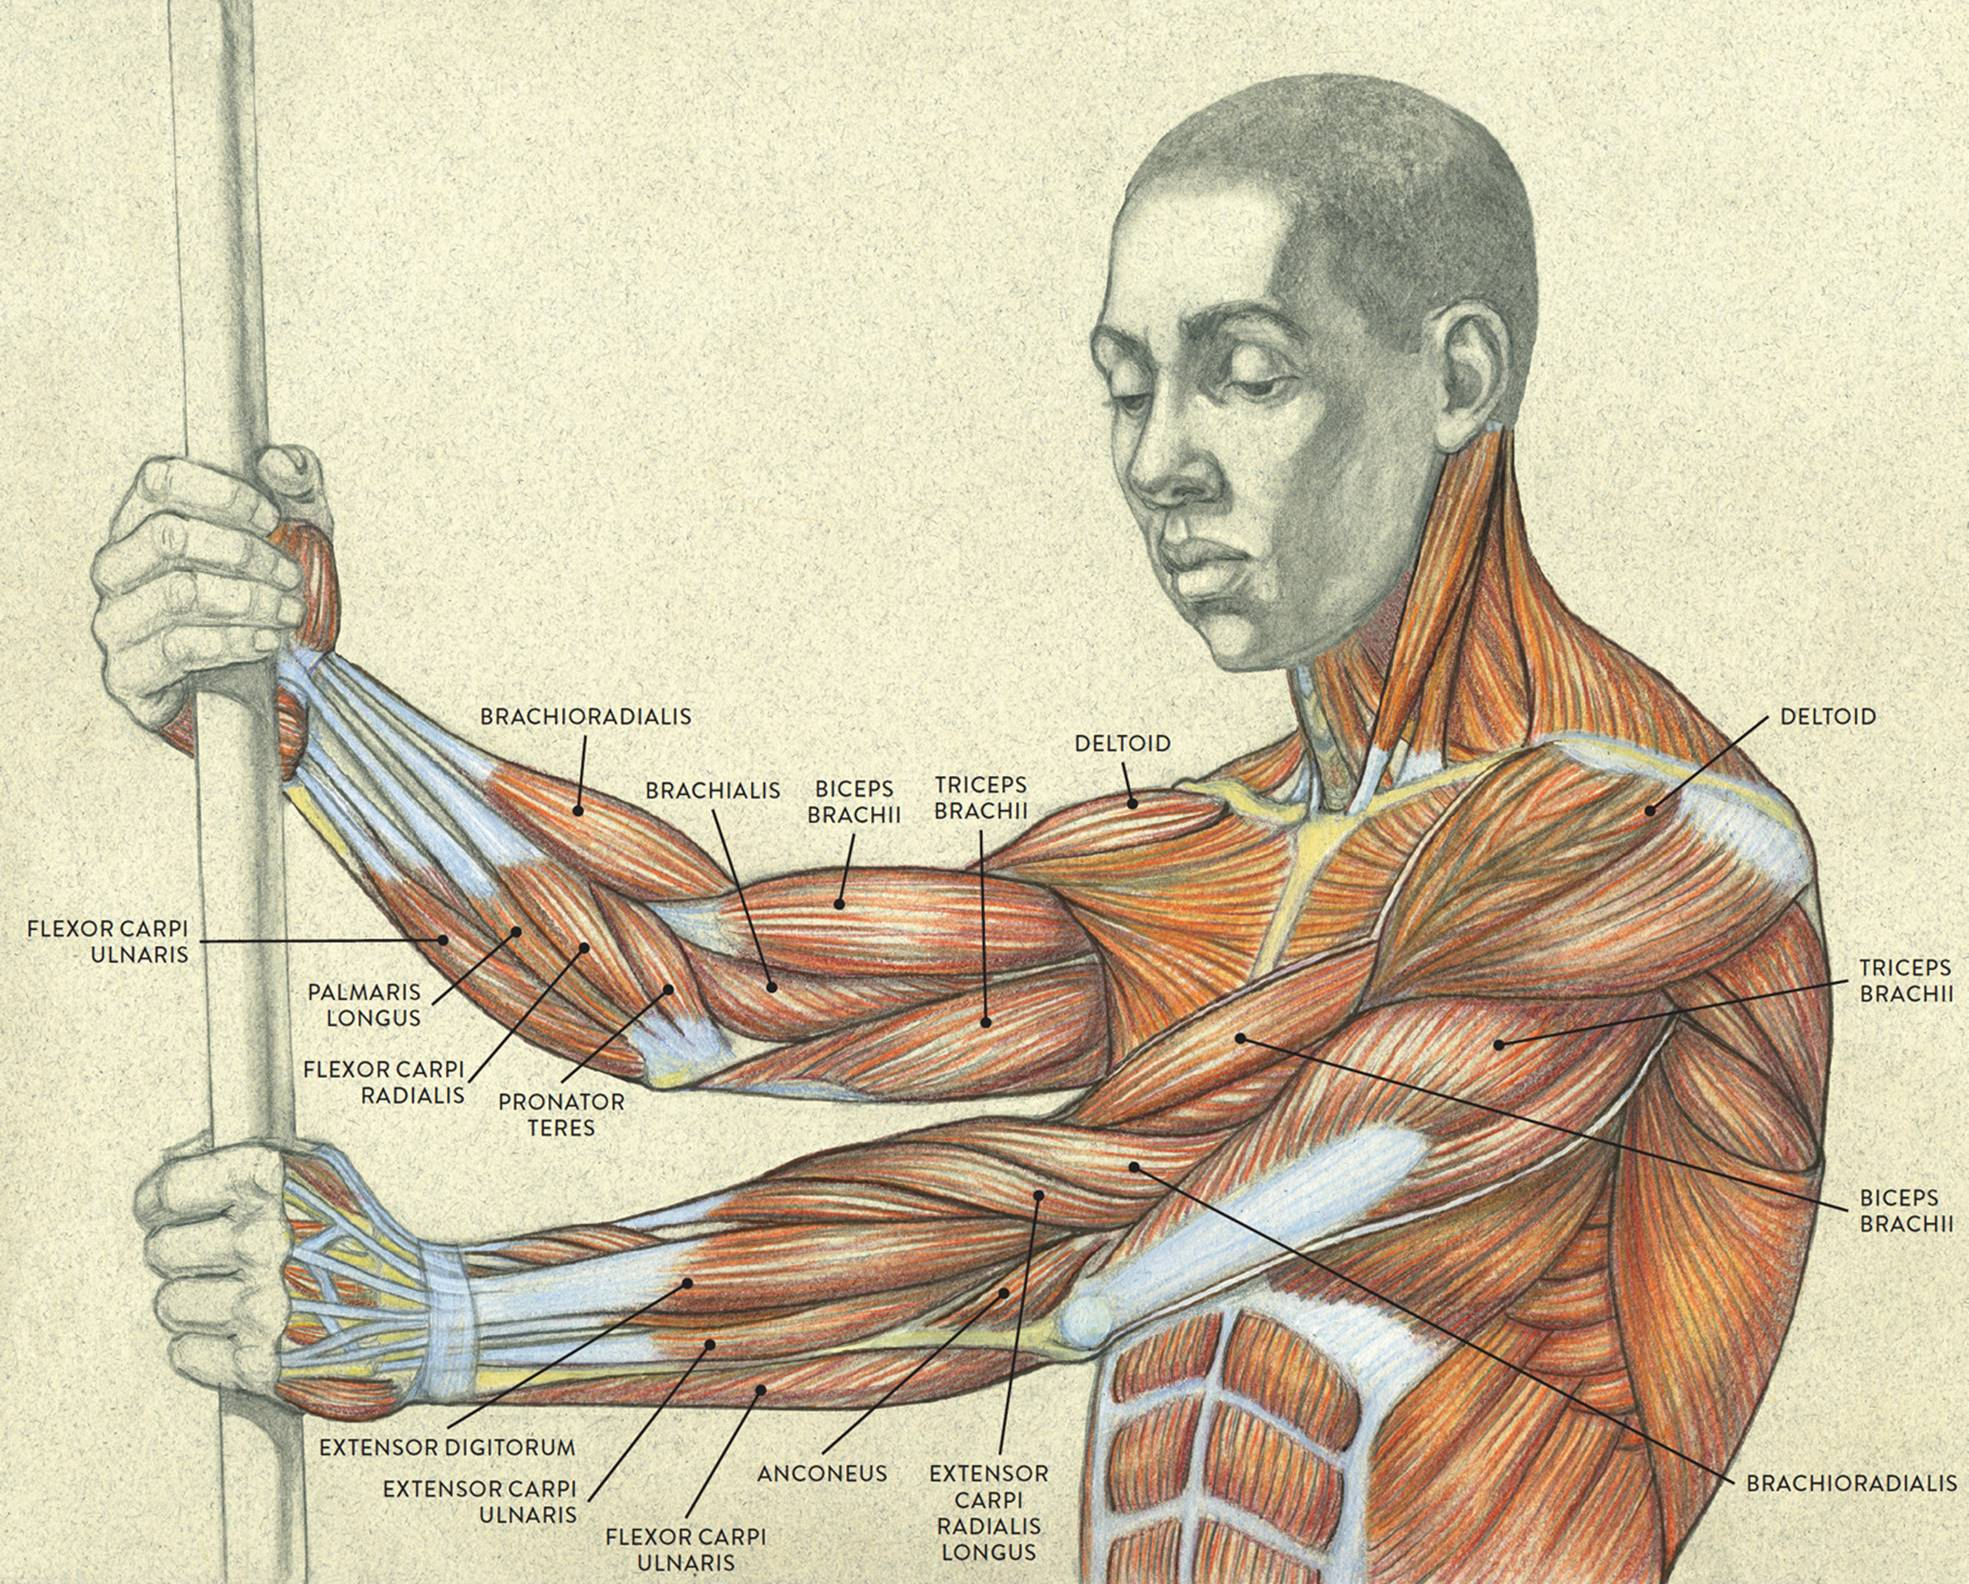 Muscles of the Arm and Hand - Classic Human Anatomy in